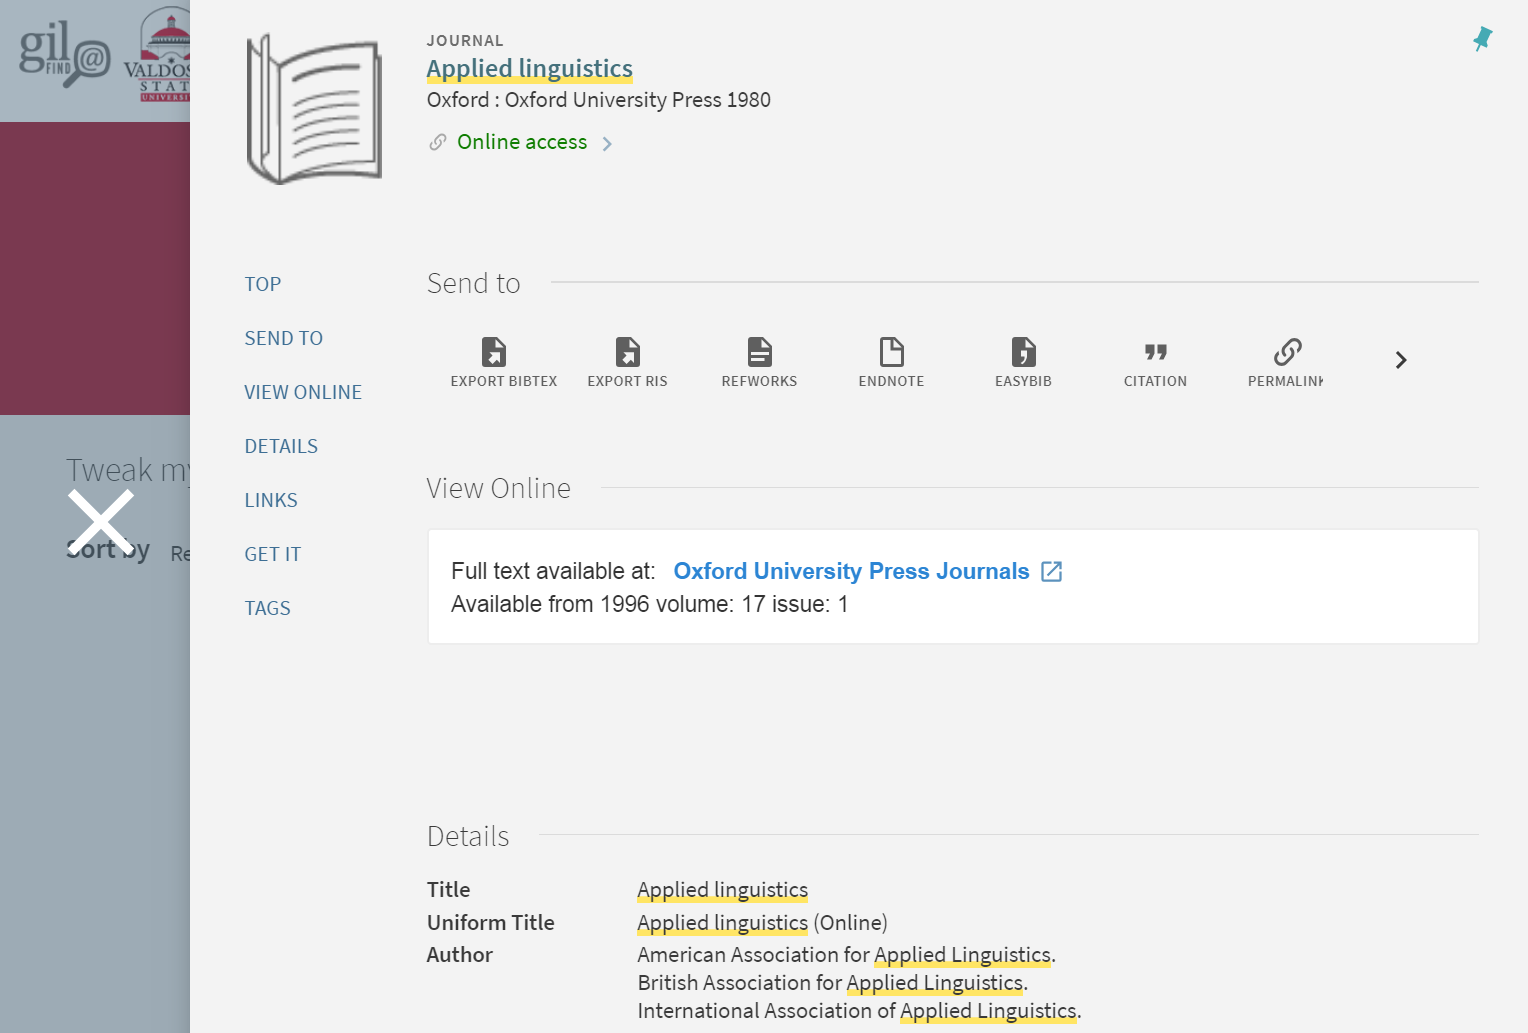 Applied Linguistics on Journals A to Z page. Clicking on Online Access expands to reveal more information about access and availability at Odum Library